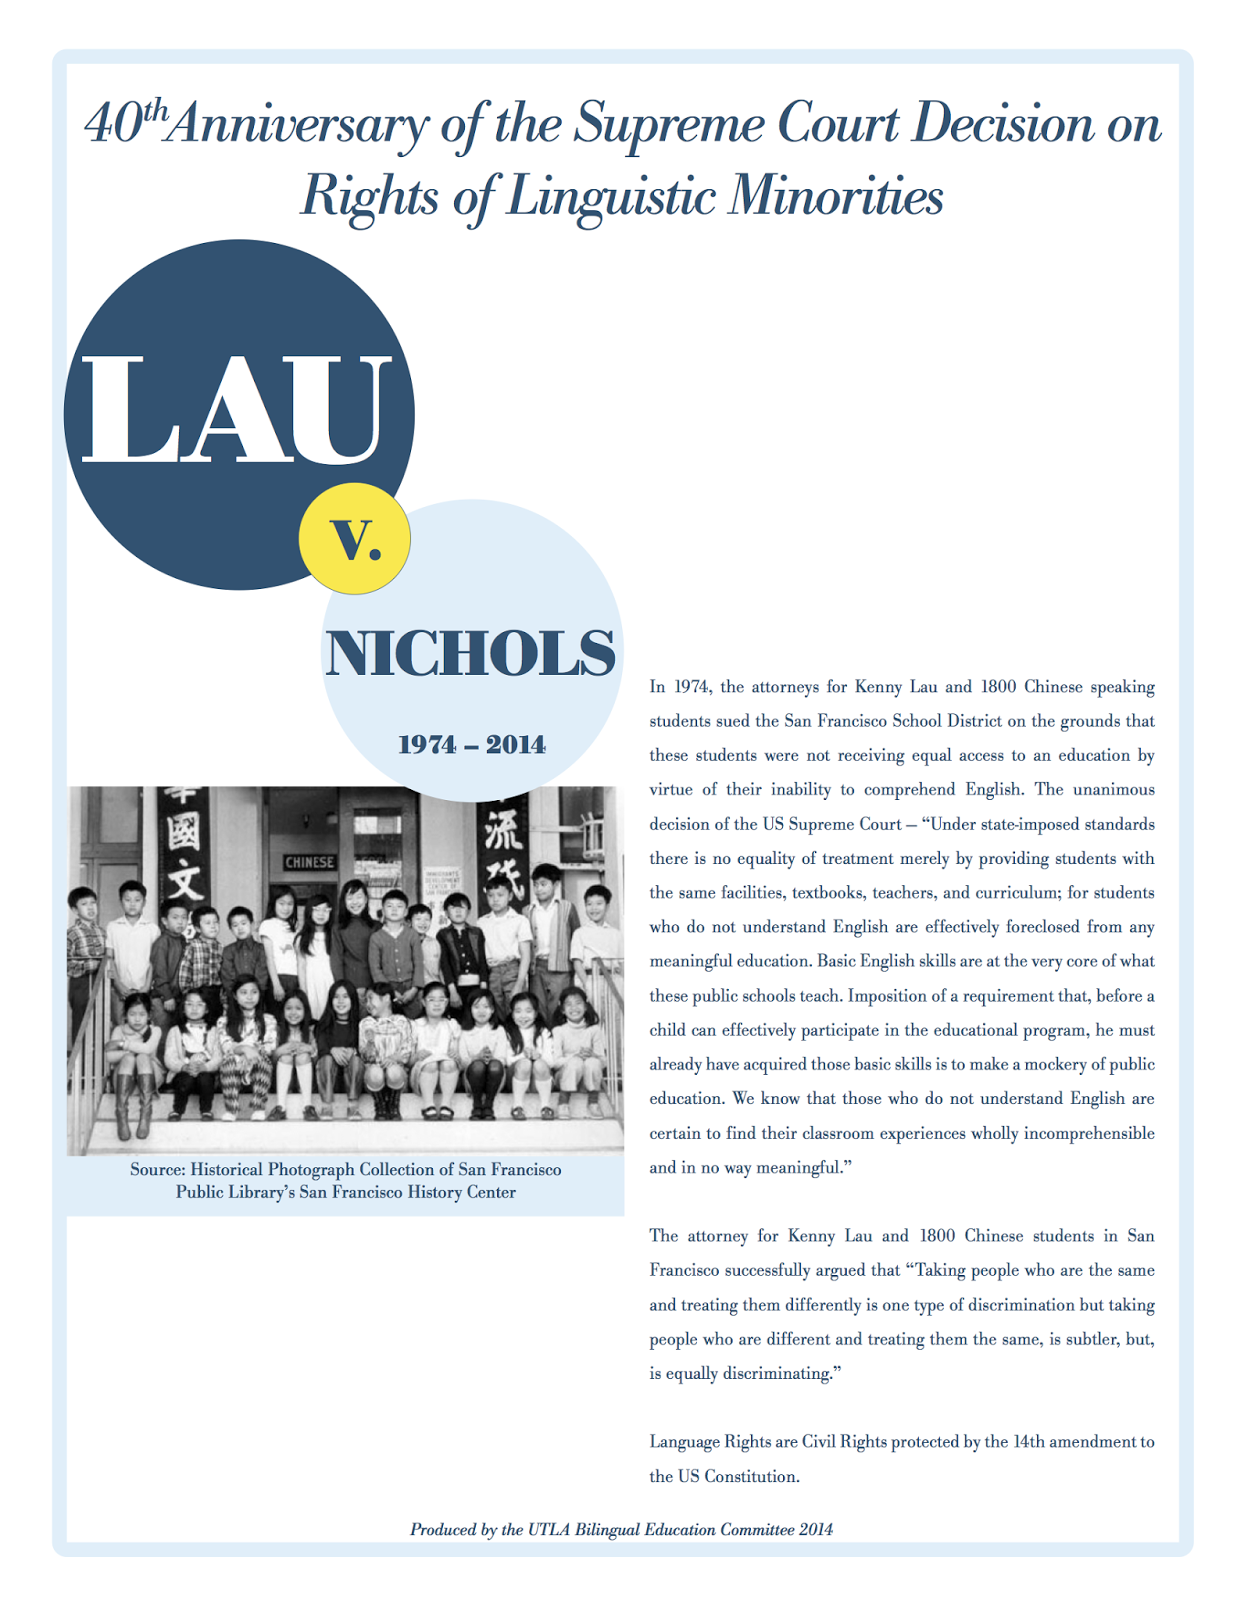 40th Anniversary of the Supreme Court Decision on Rights of Linguistic Minorities